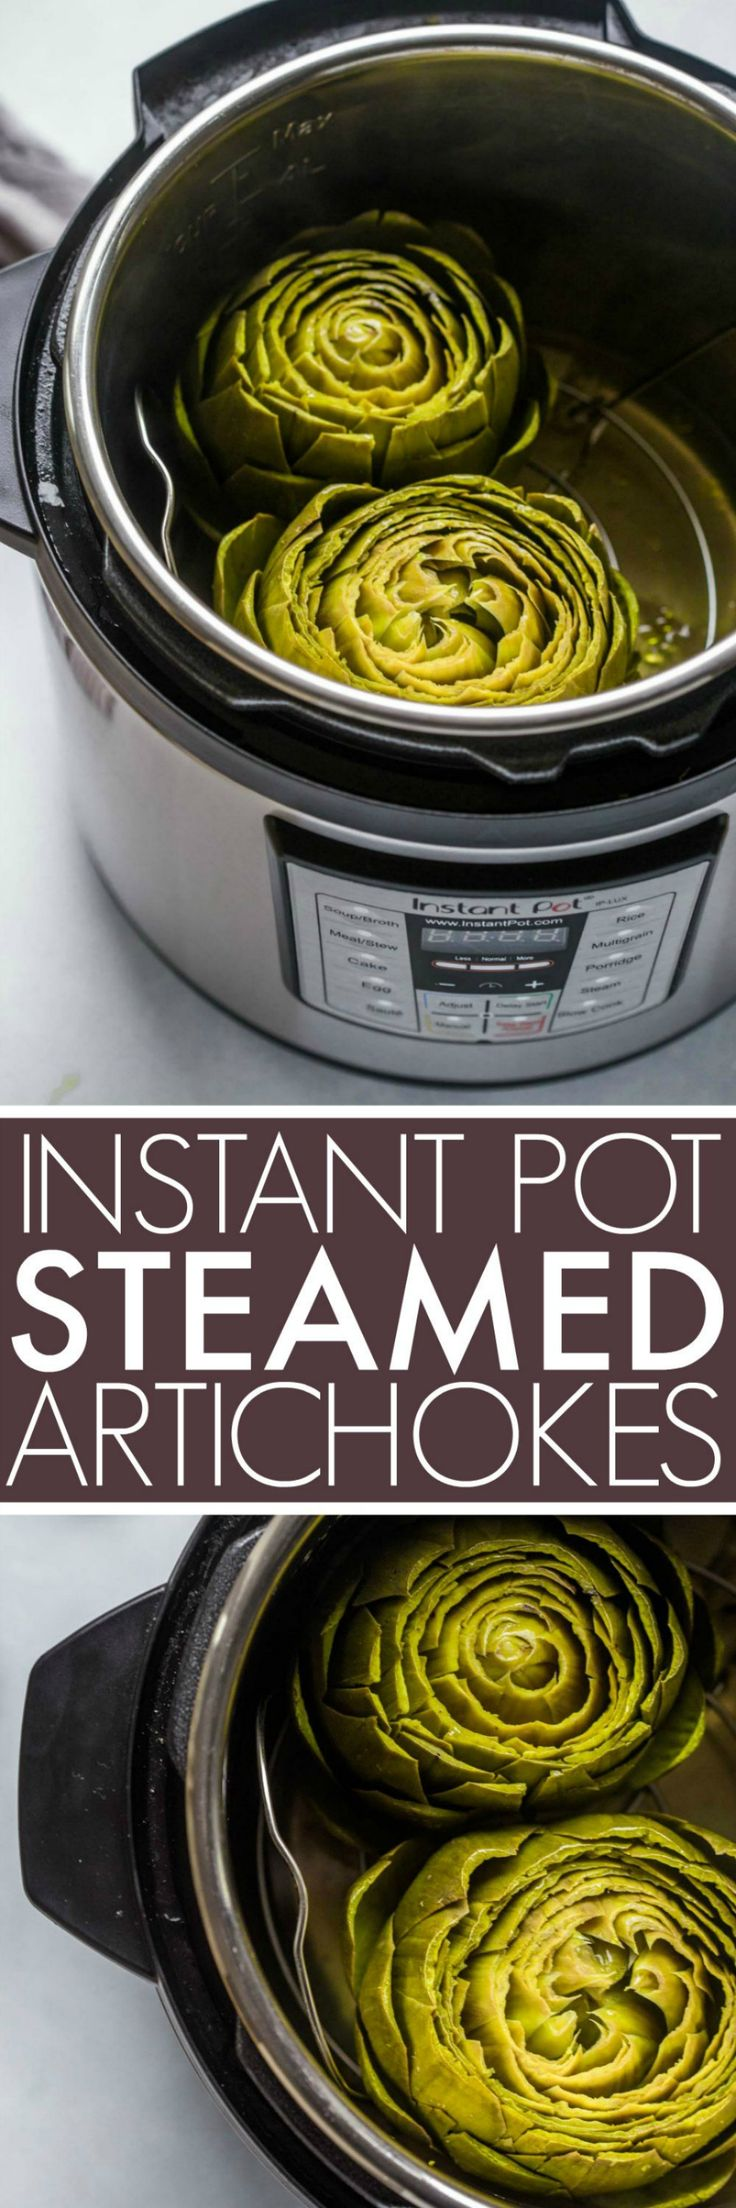 Instant Pot Steamed Artichokes are quick and easy to make with the help of your …